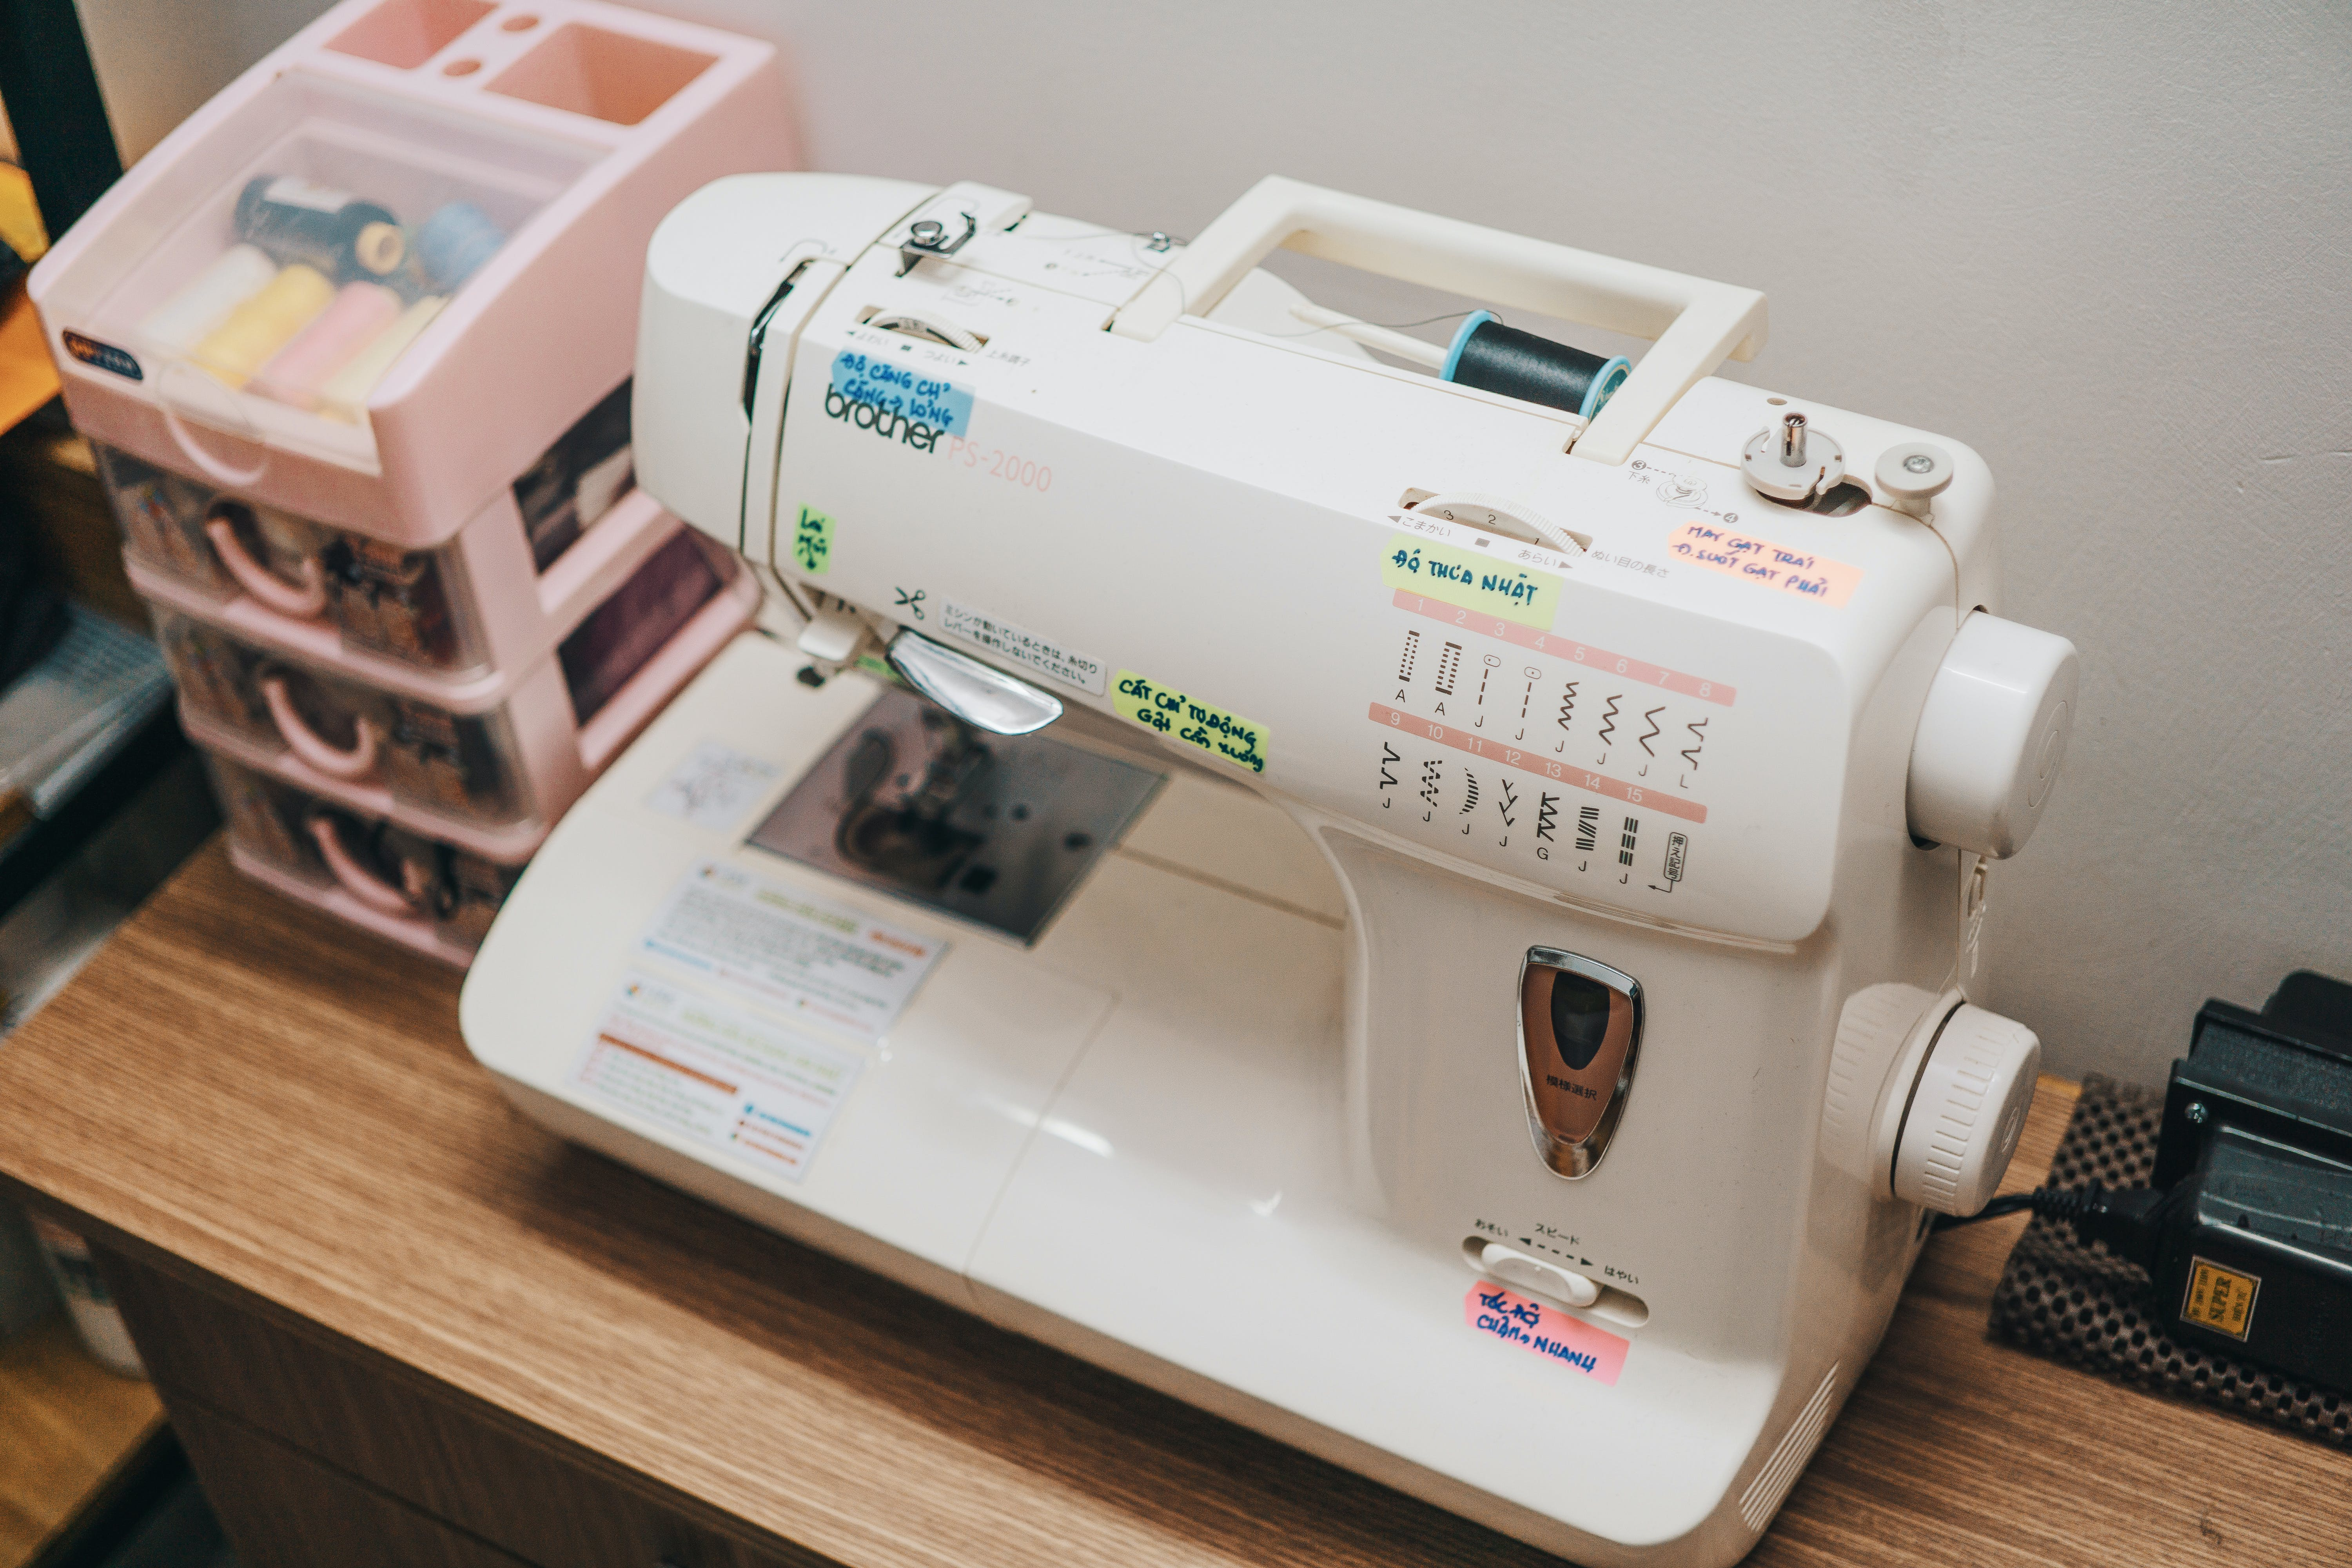 29 Basic And Complex Sewing Techniques Sewers Should Master